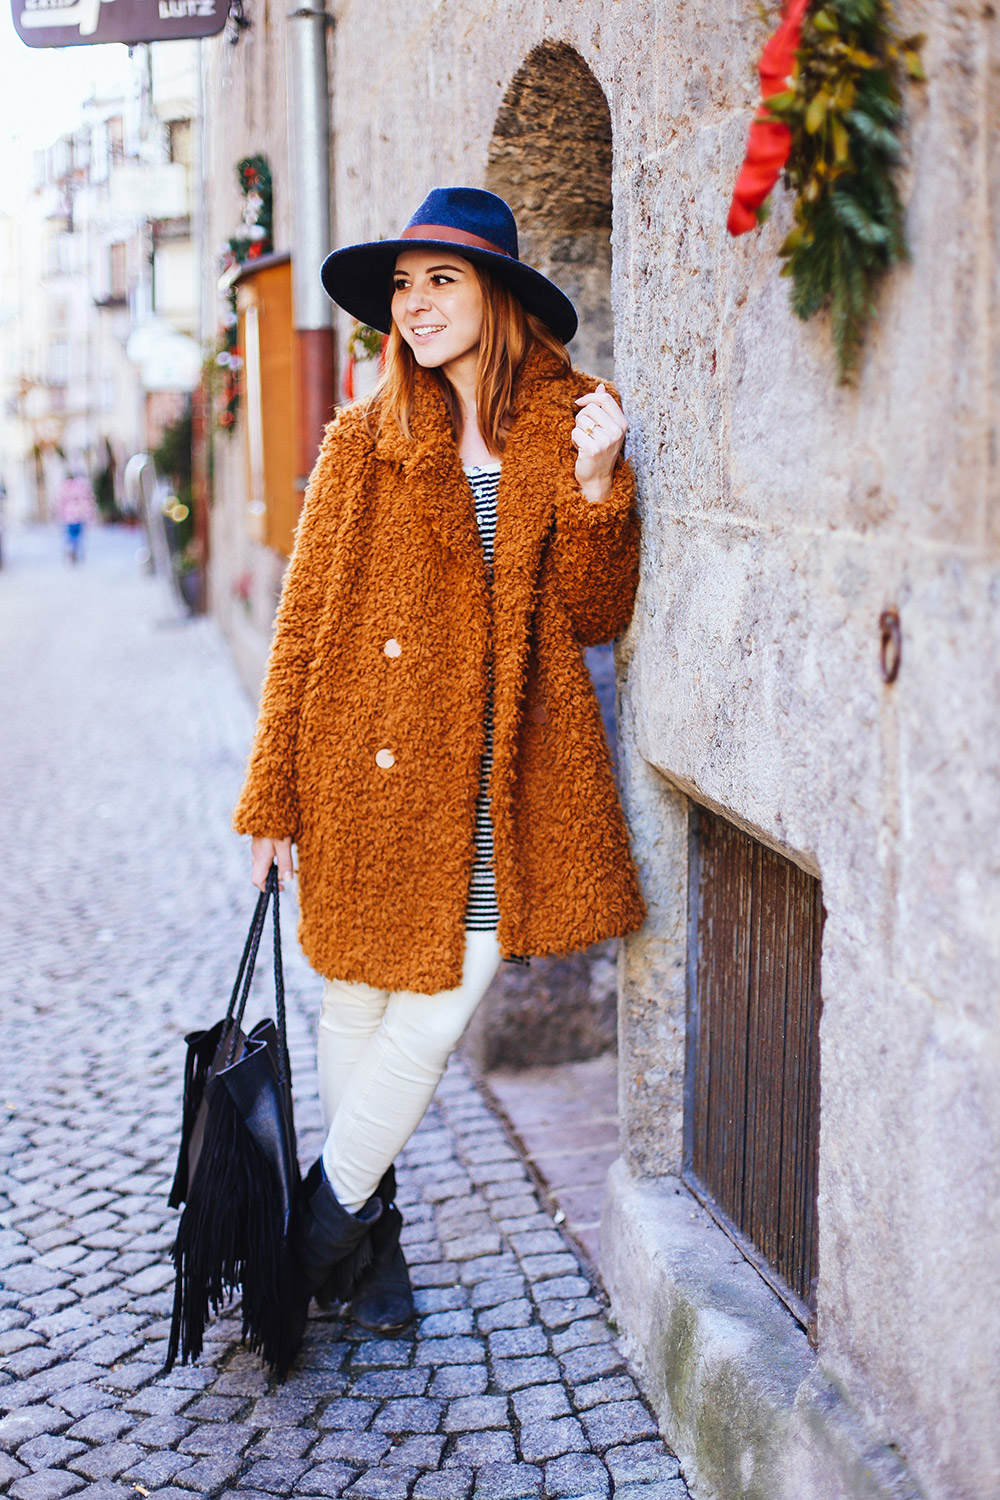 who is mocca, modeblog, fashionblog, influencer, mantel aus teddystoff, free people jeans, free people shirt, streifenshirt kombinieren, isabel marant pour hm boots, mango tasche mit fransen, fedora